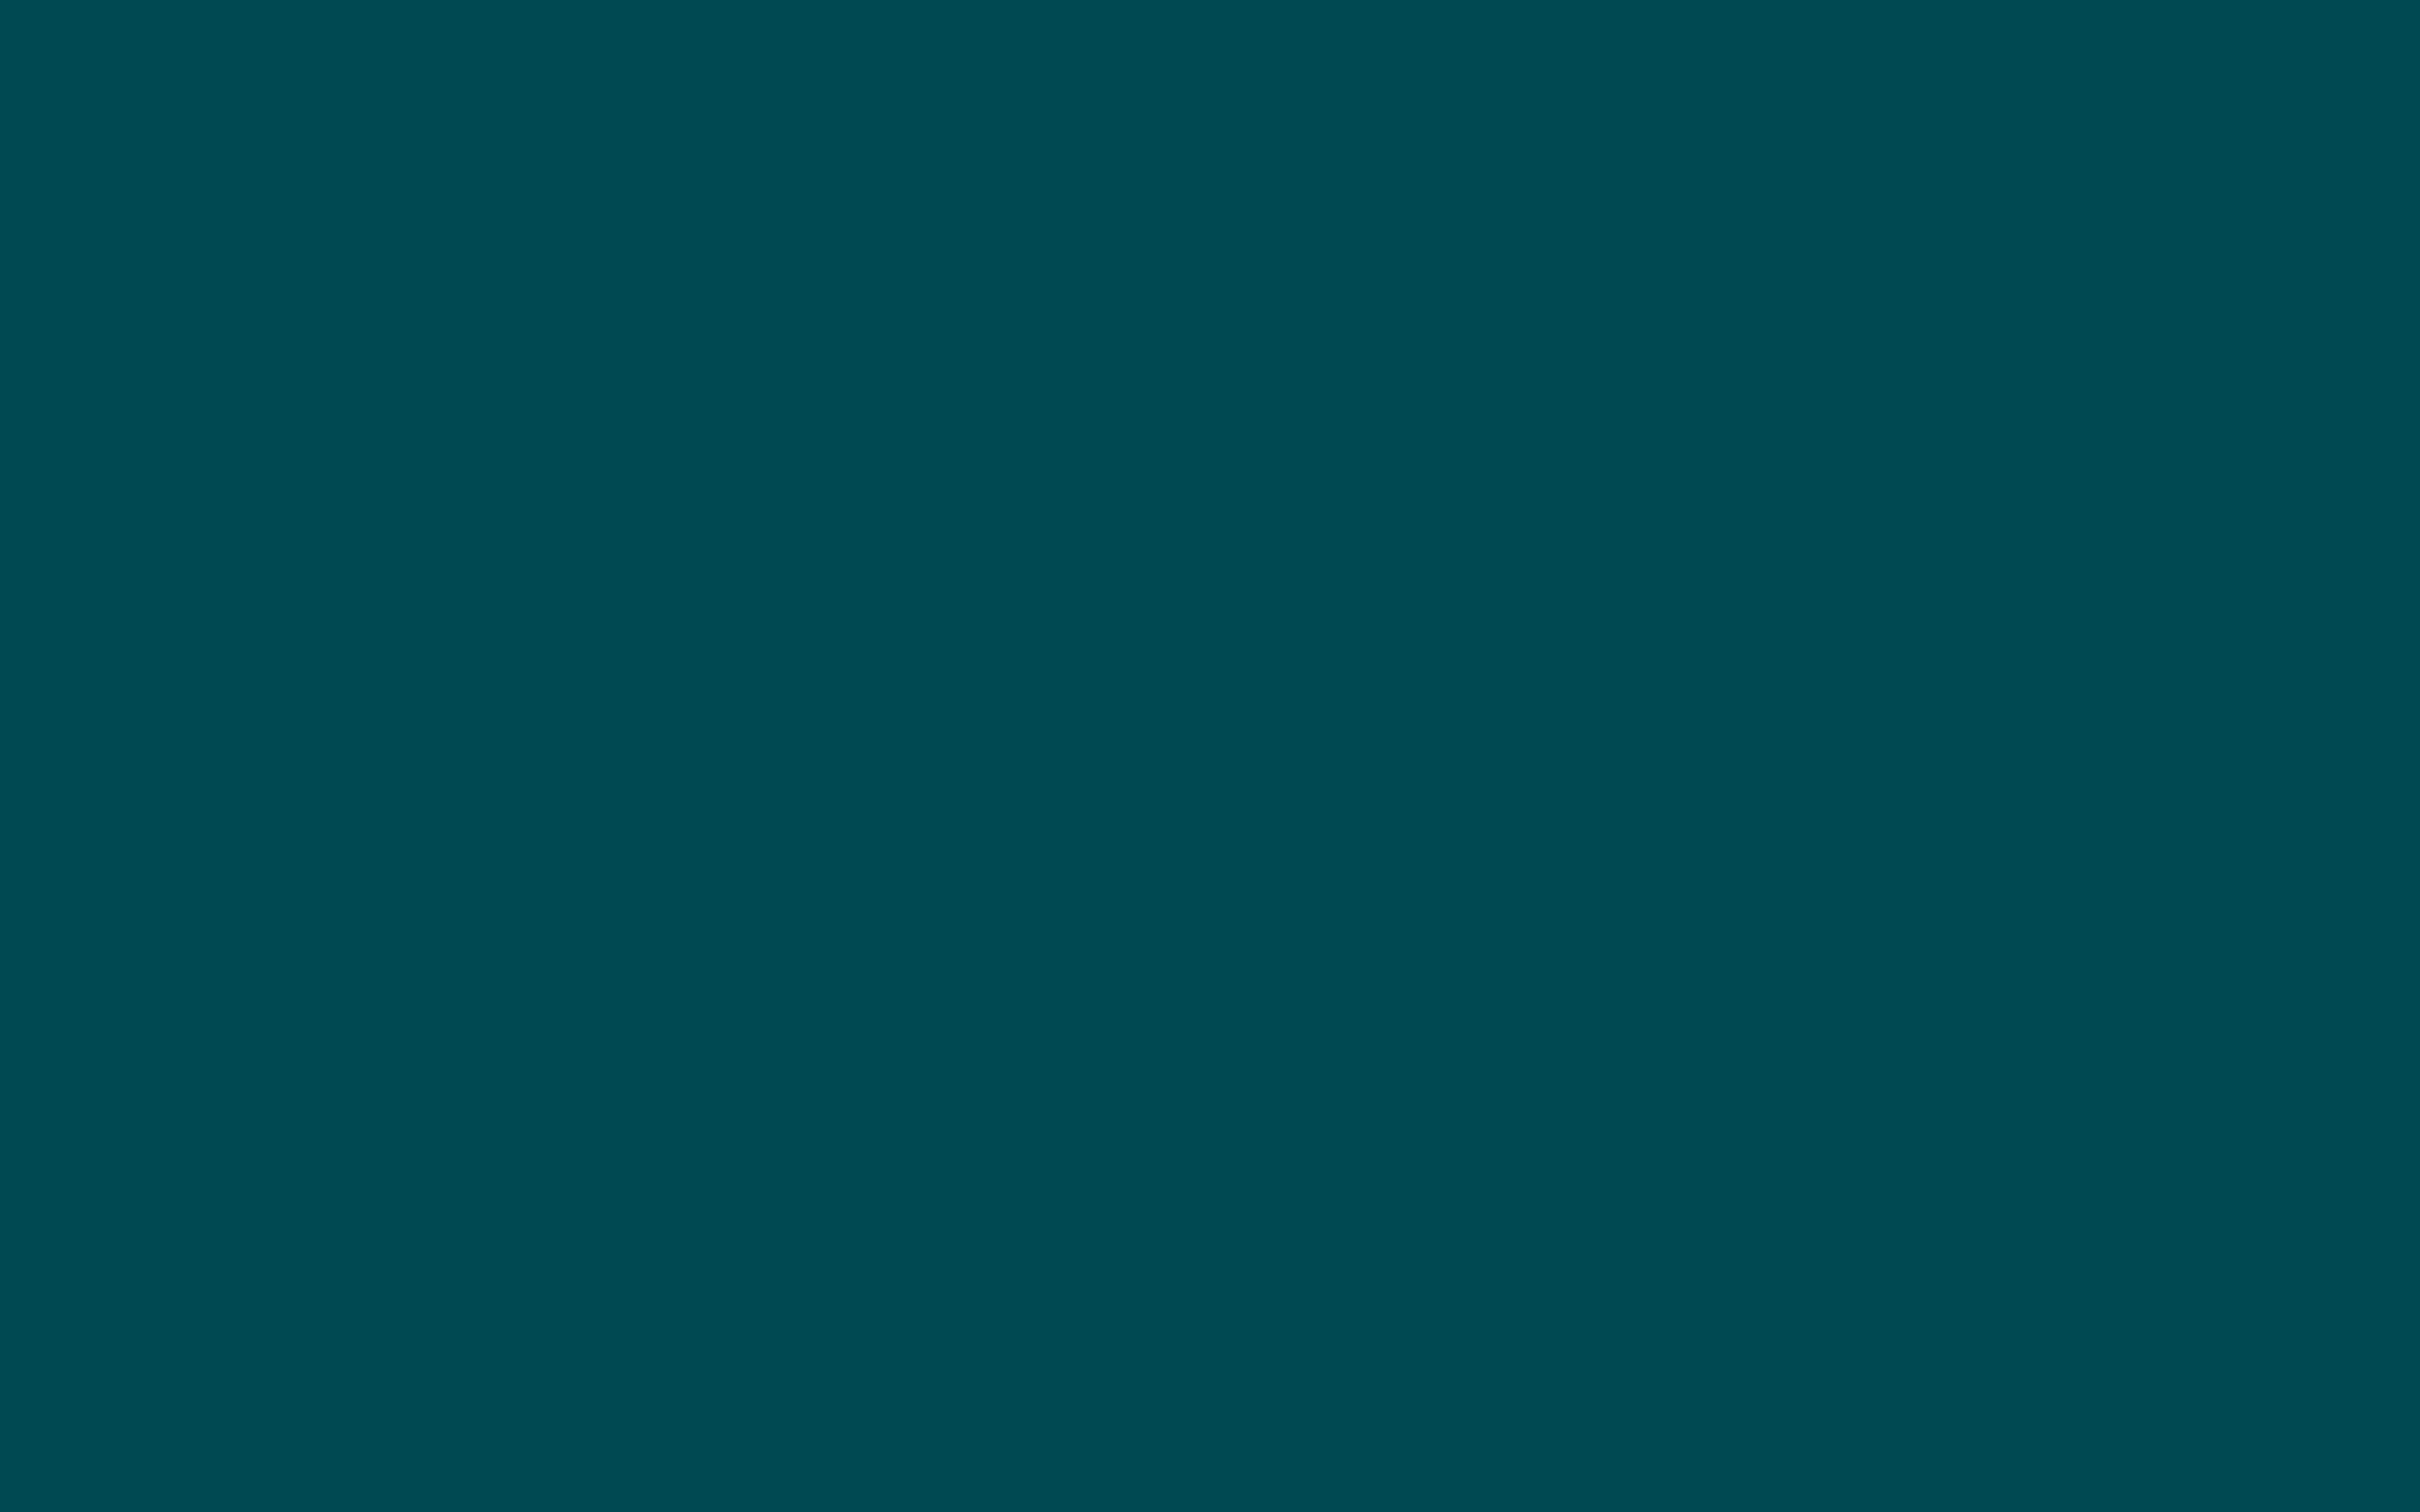 2880x1800 Midnight Green Solid Color Background